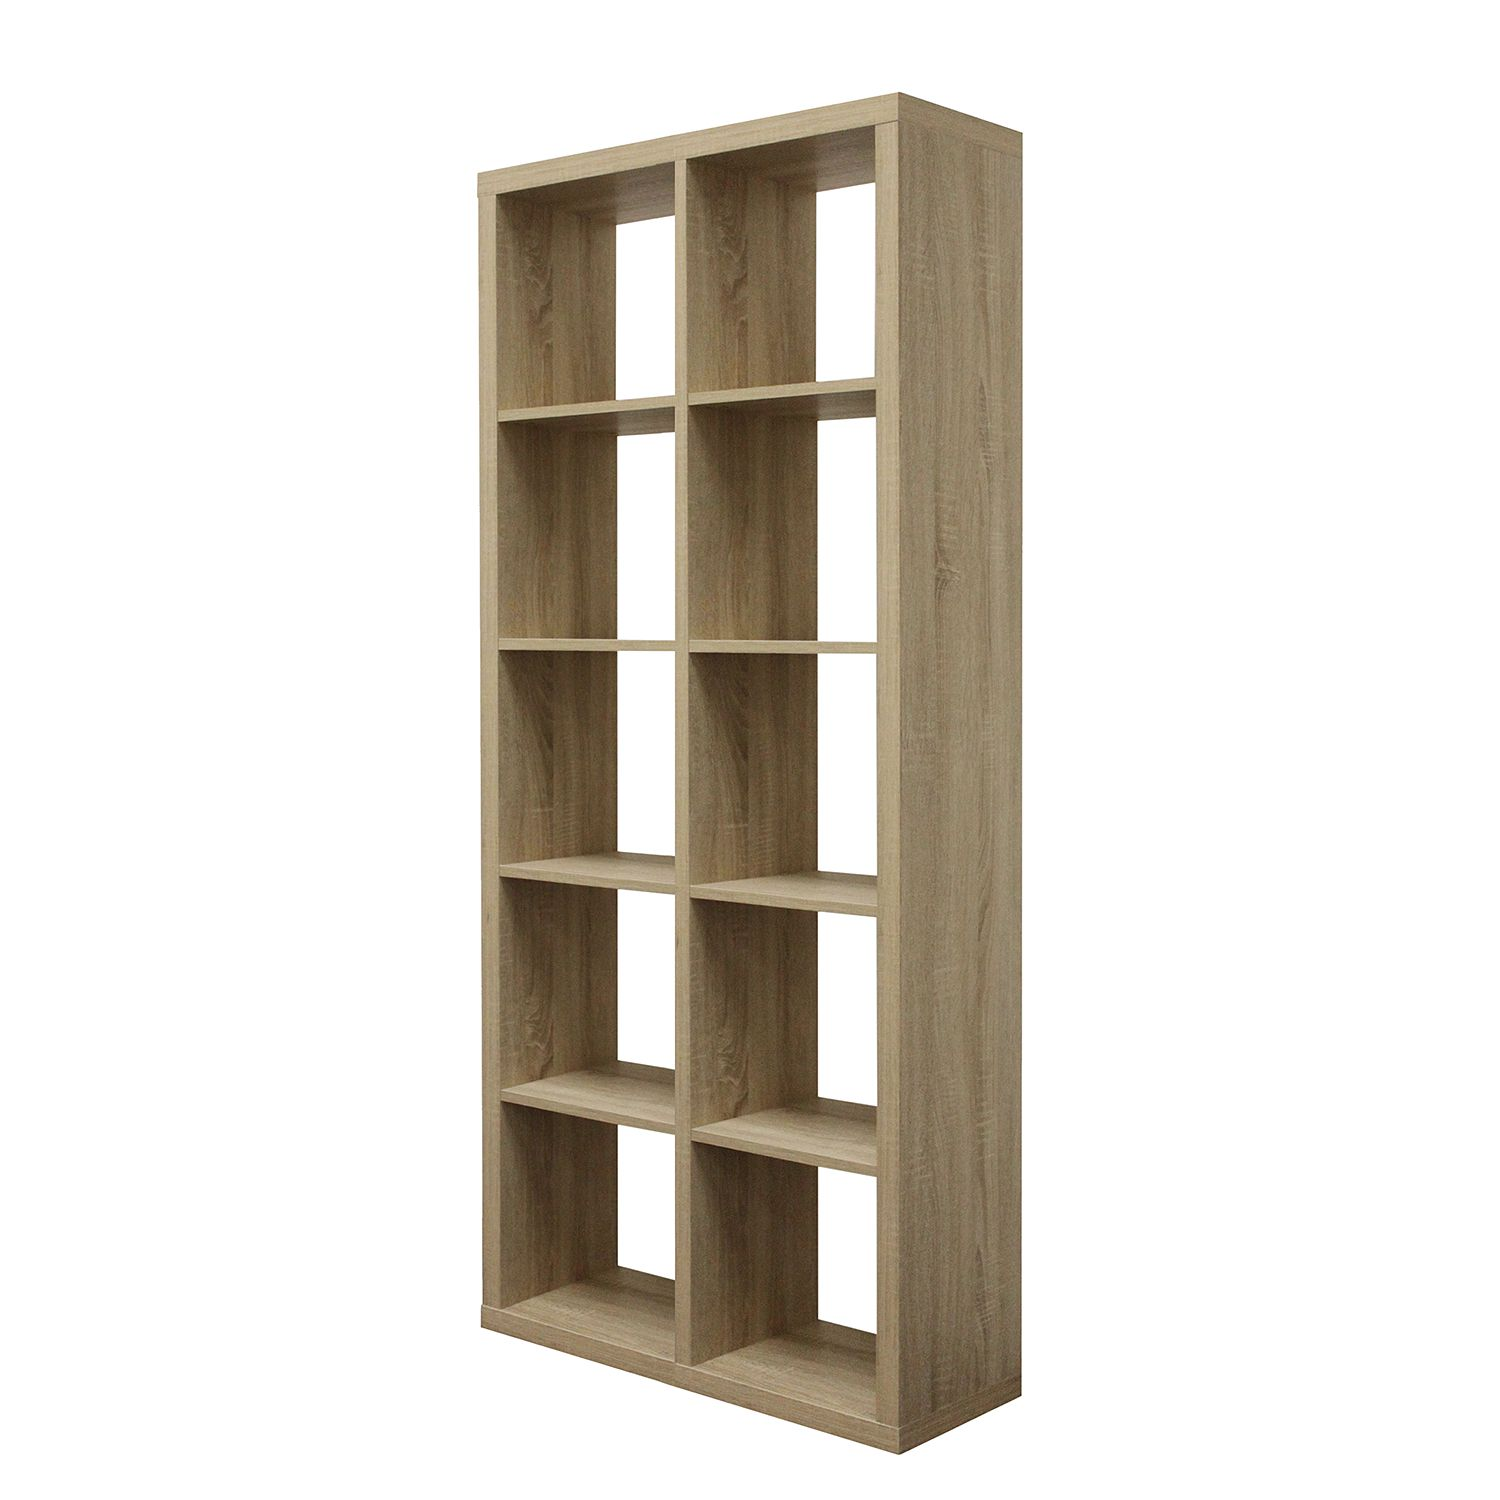 Regal Shelfy Regal Shelfy Preisvergleich